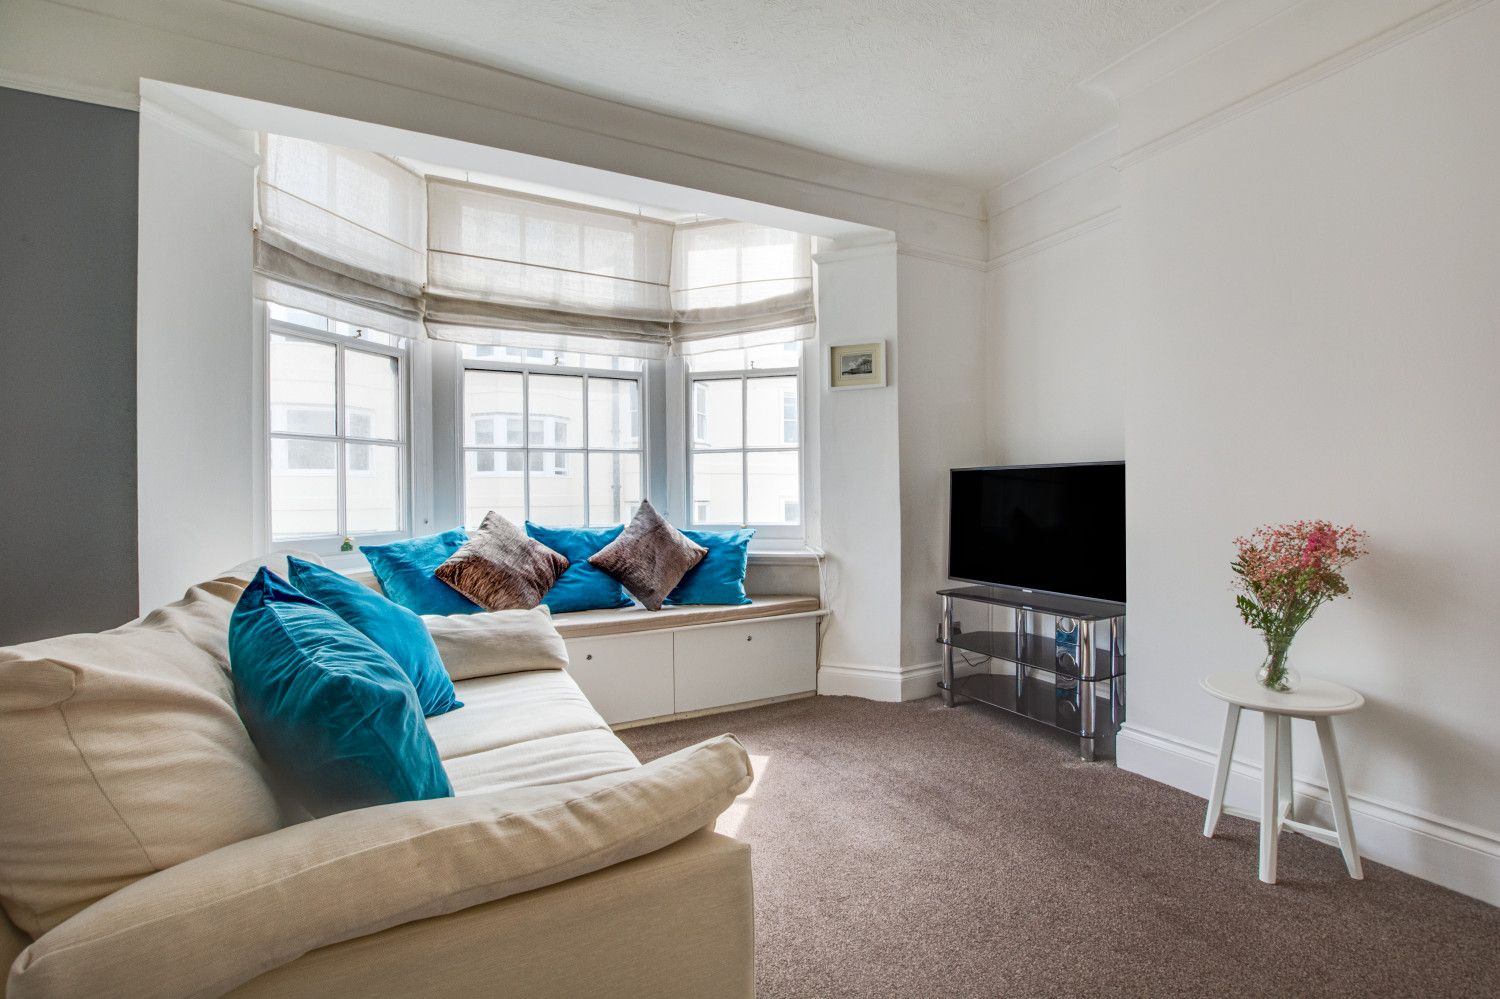 Property photo 1 of 6. Living Area